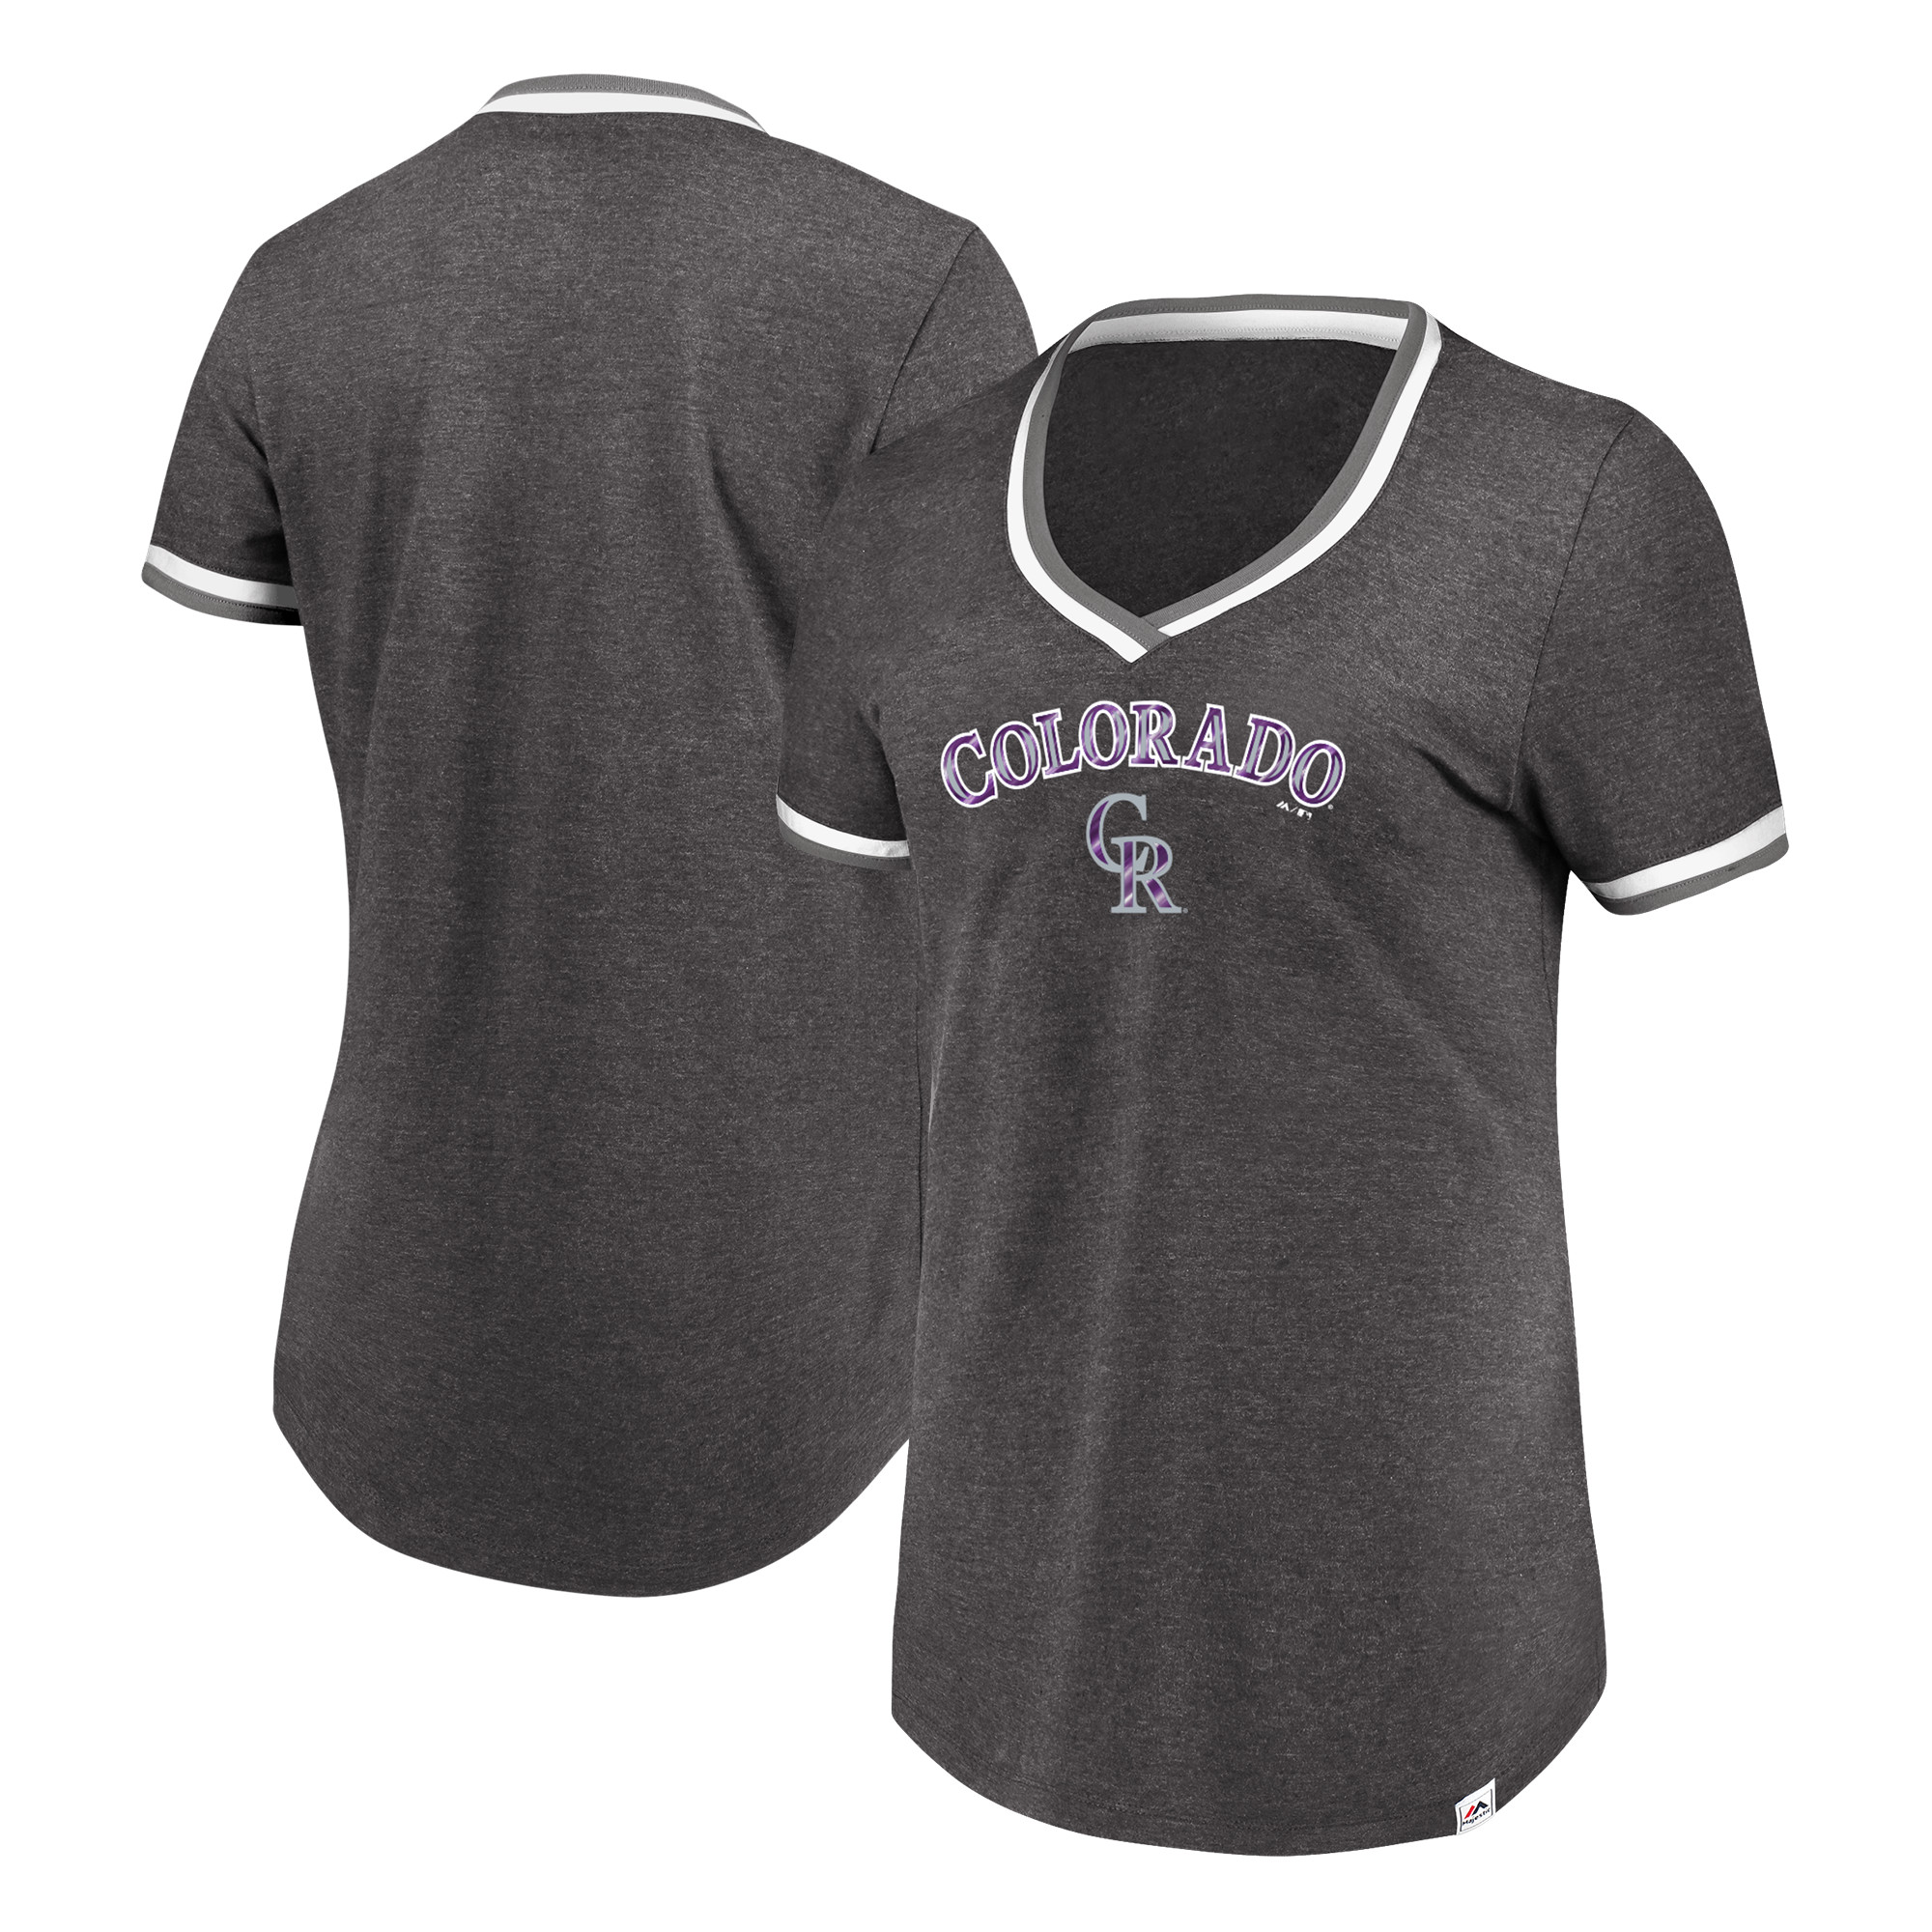 Colorado Rockies Majestic Women's Driven By Results V-Neck T-Shirt - Charcoal